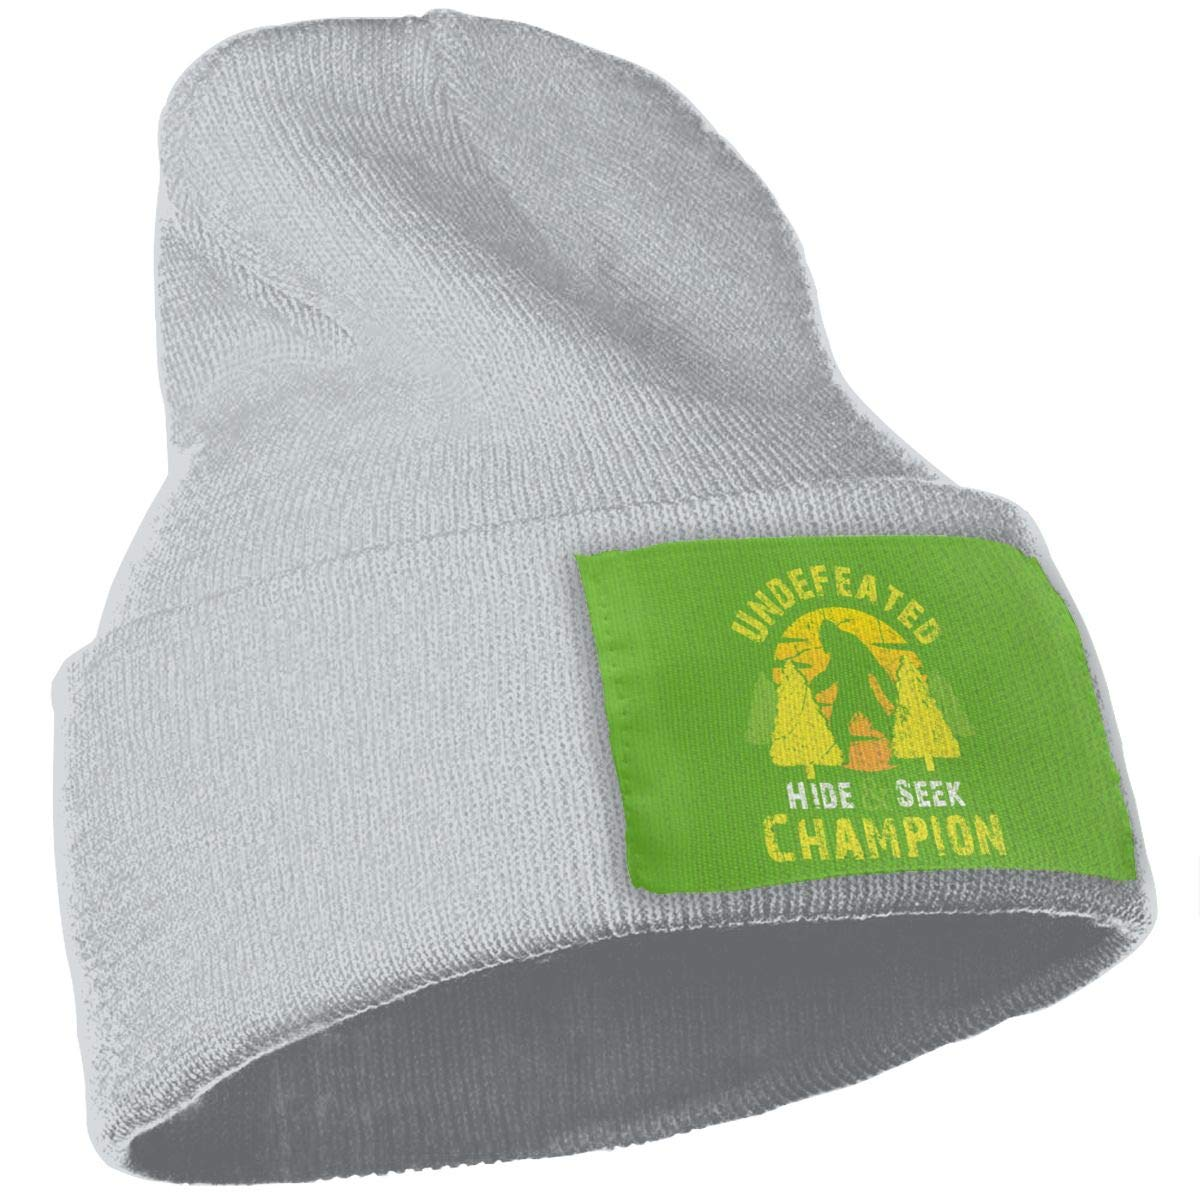 Undefeated Hide and Seek Champion Bigfoot 4 Wool Cap Beanies Cap Unisex Winter Gray